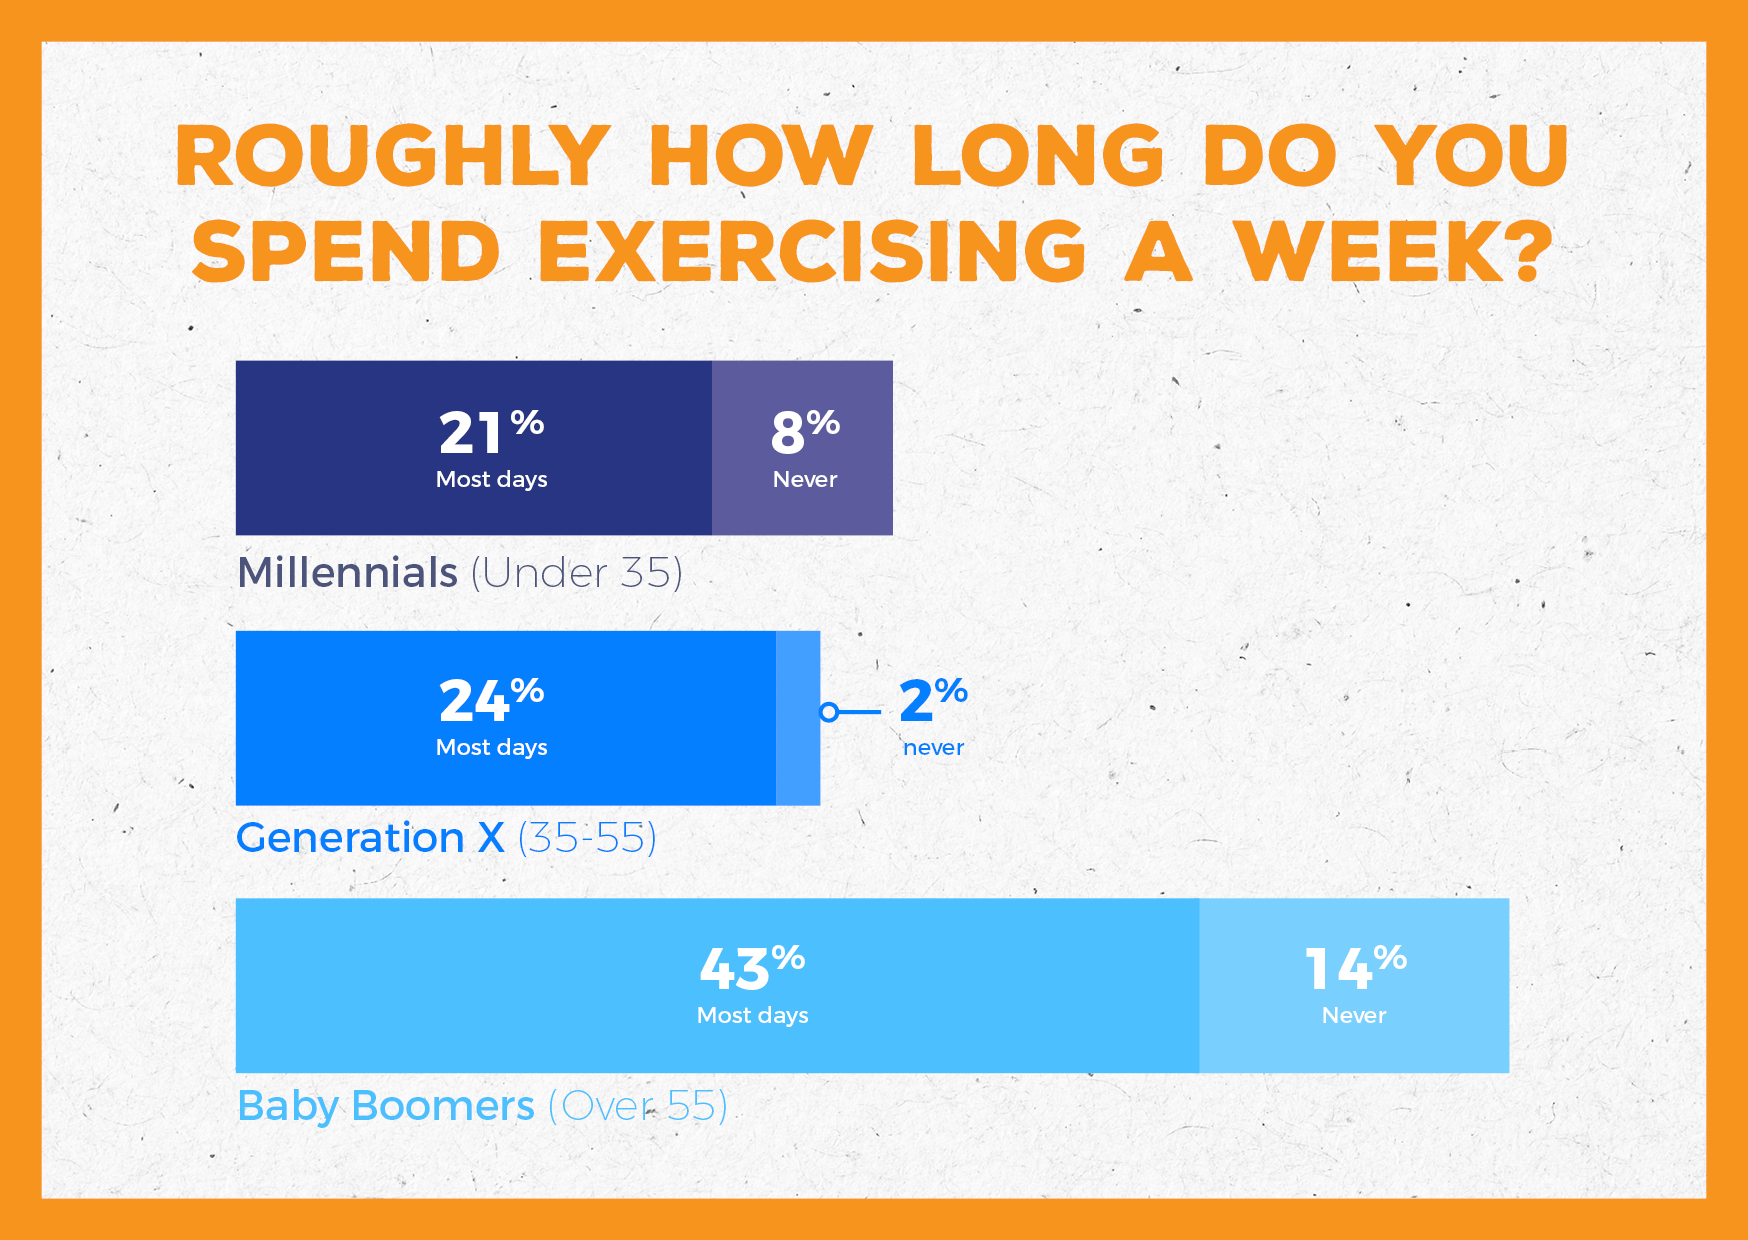 No Time For Millennials To Exercise 5 Ways To Fit Exercise Into Your Busy Life He And She Fitness